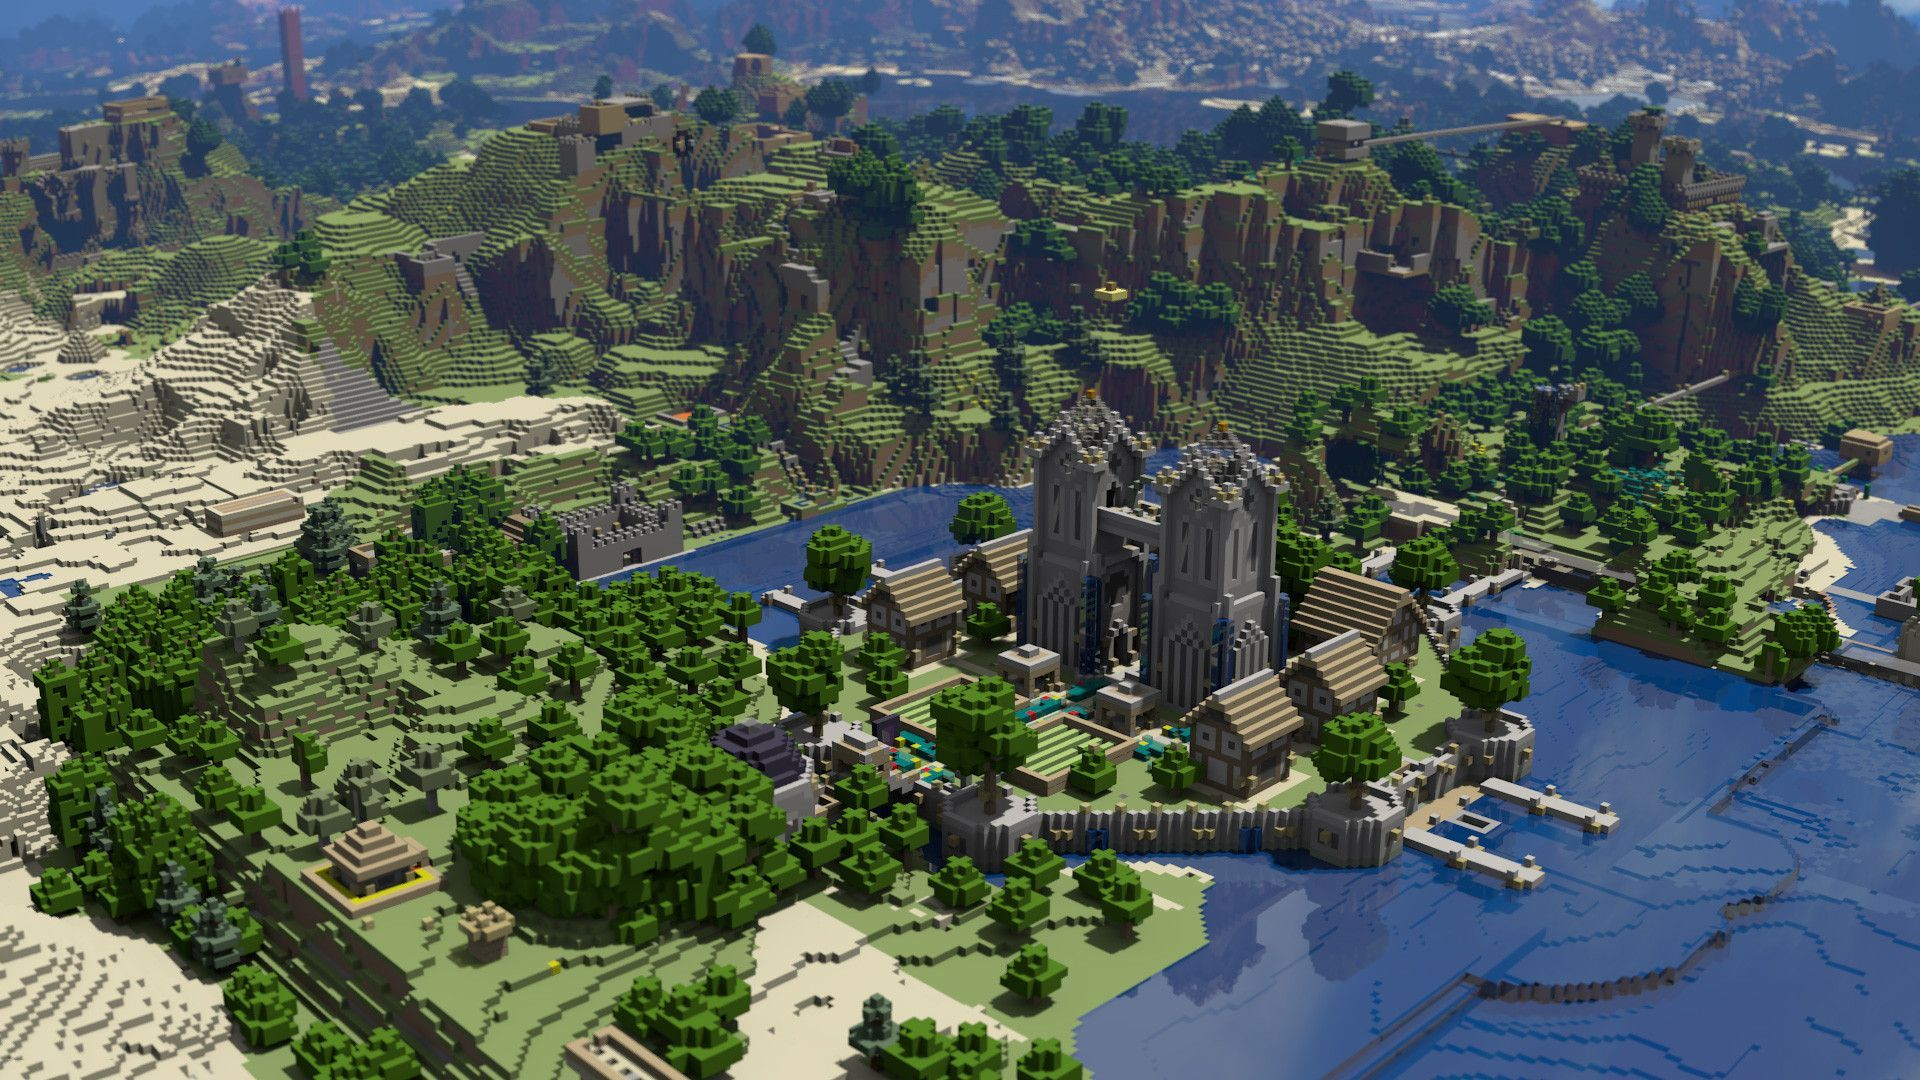 Cool Minecraft Backgrounds Wallpaper 1920x1080